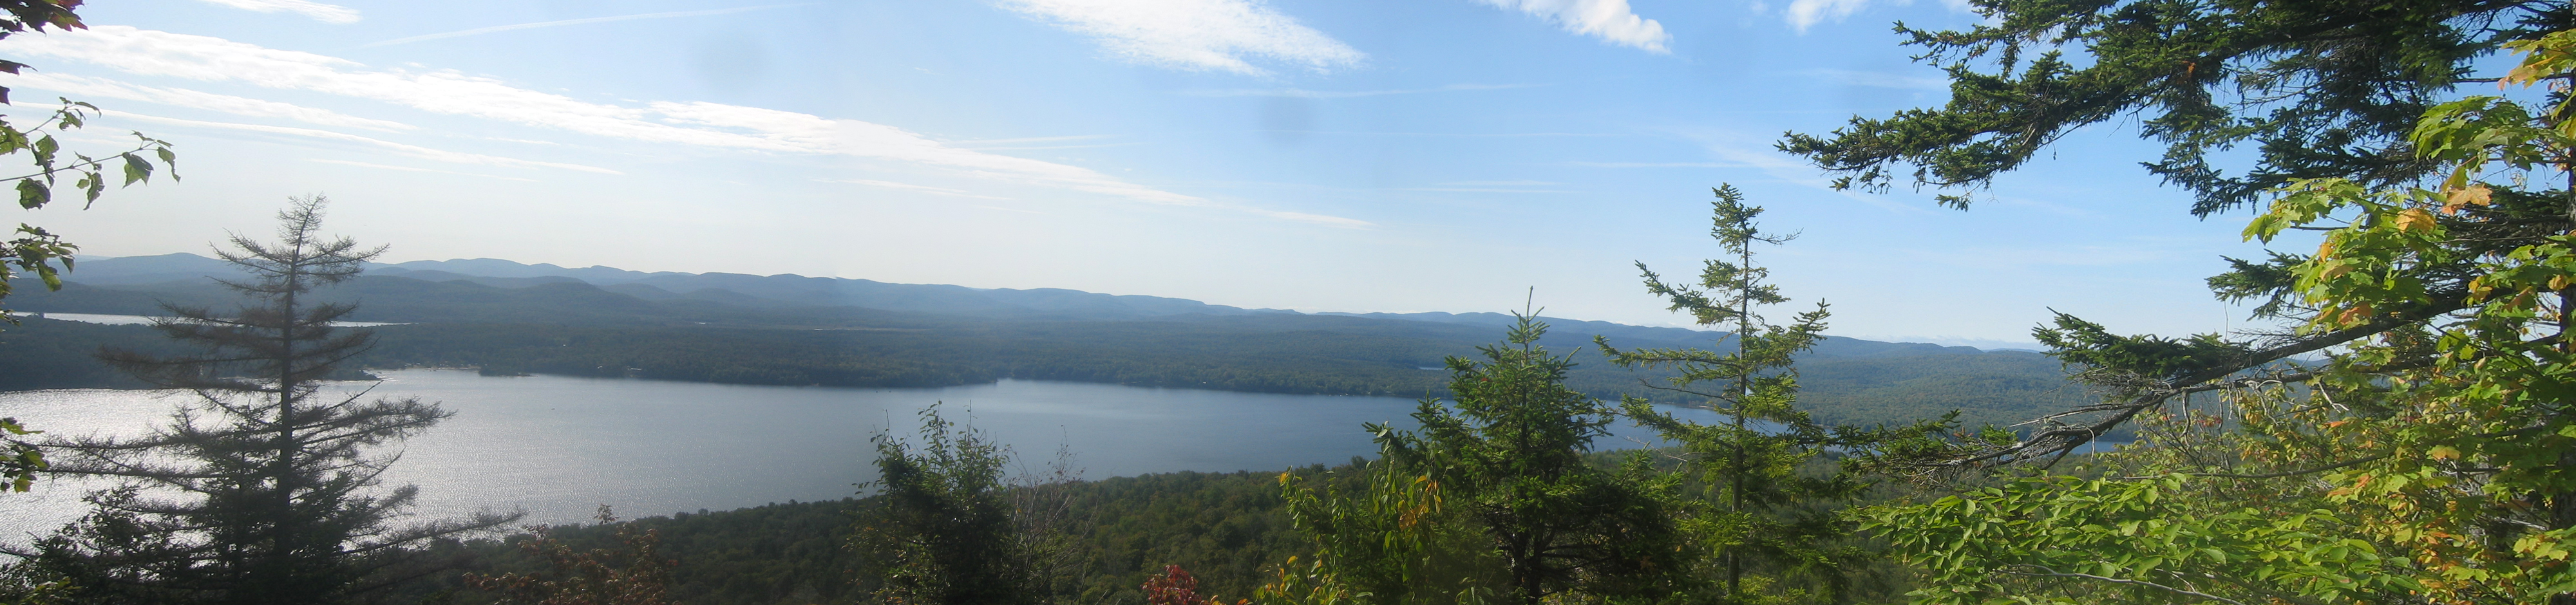 Panoramic view of Piesco Lake atop a Panther Mountain